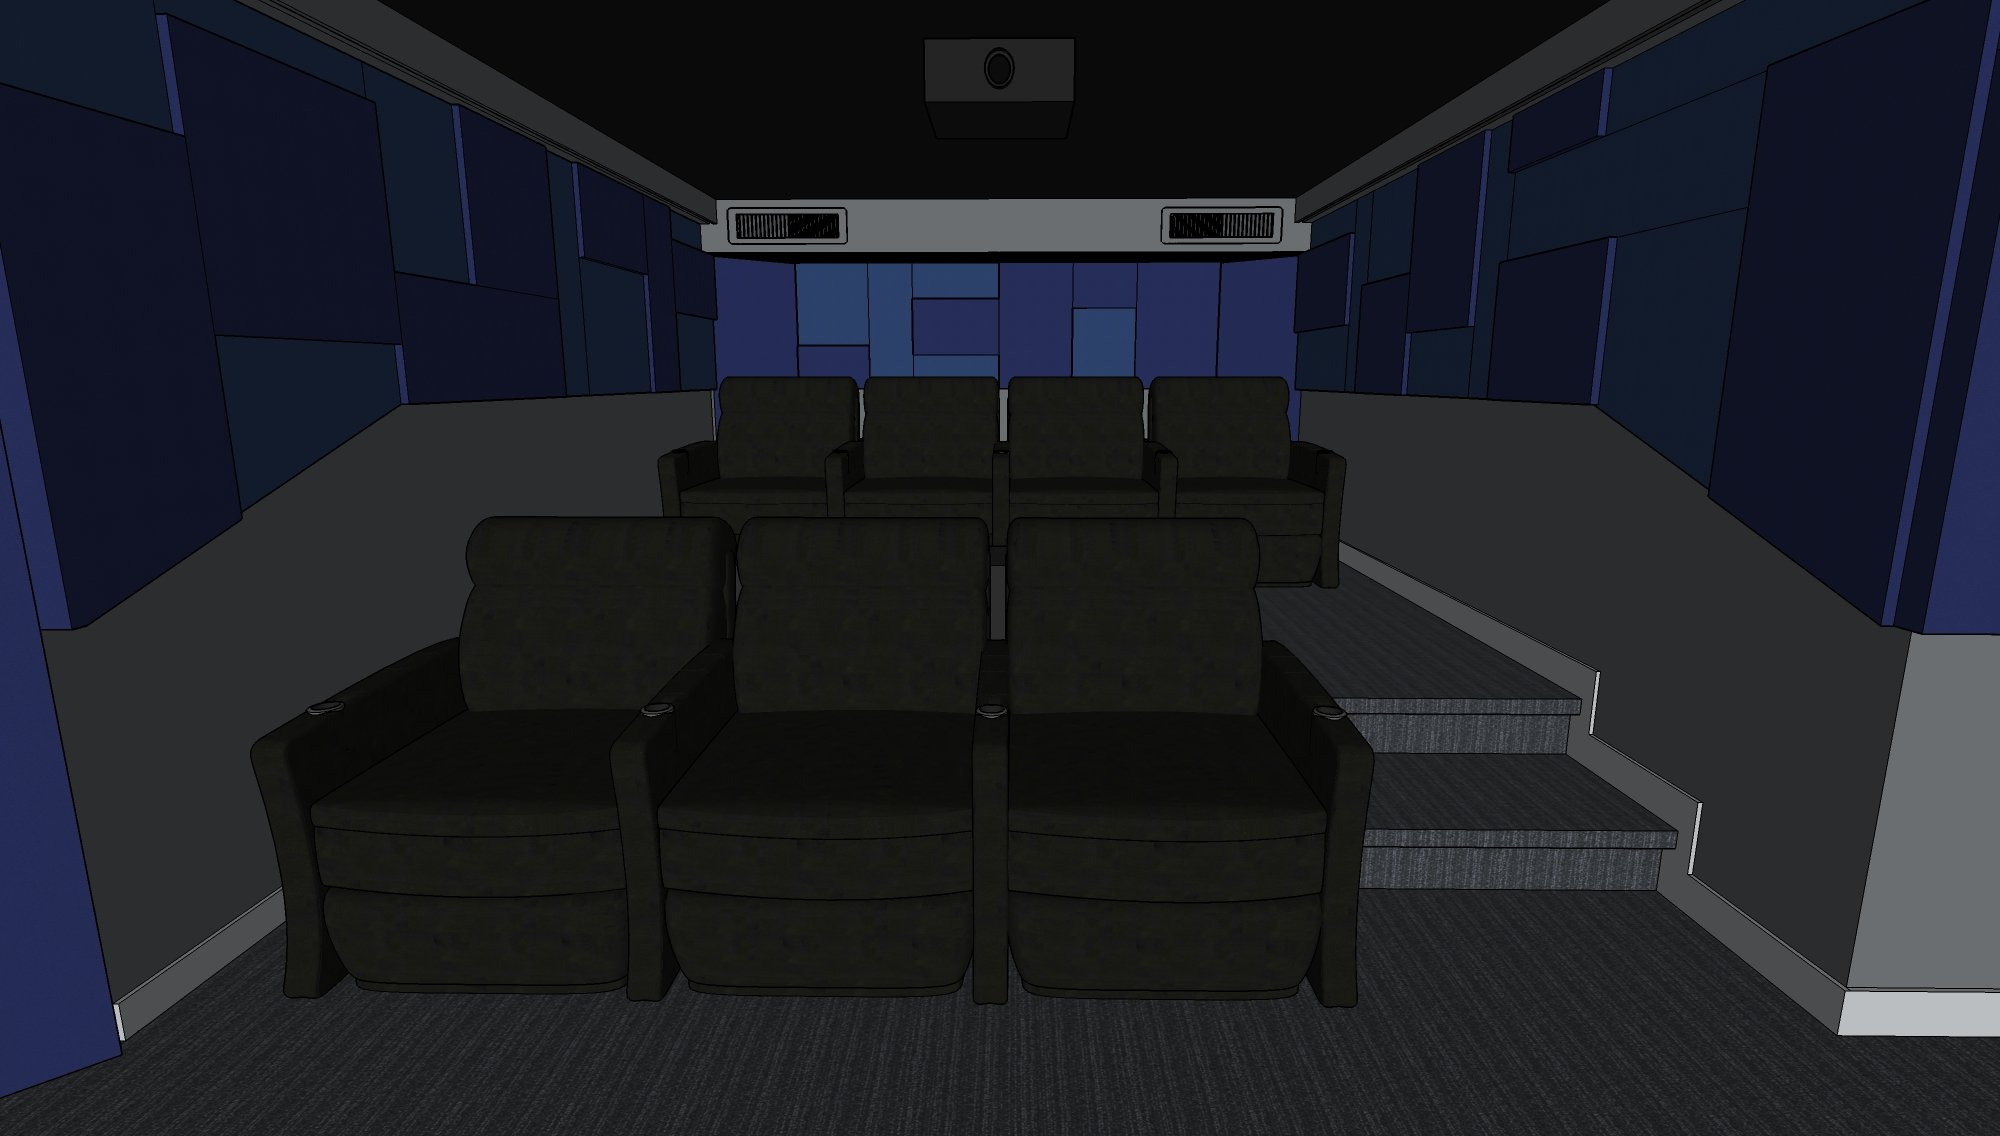 Click image for larger version  Name:Blue Room Theater Seating.jpg Views:64 Size:776.1 KB ID:2567446